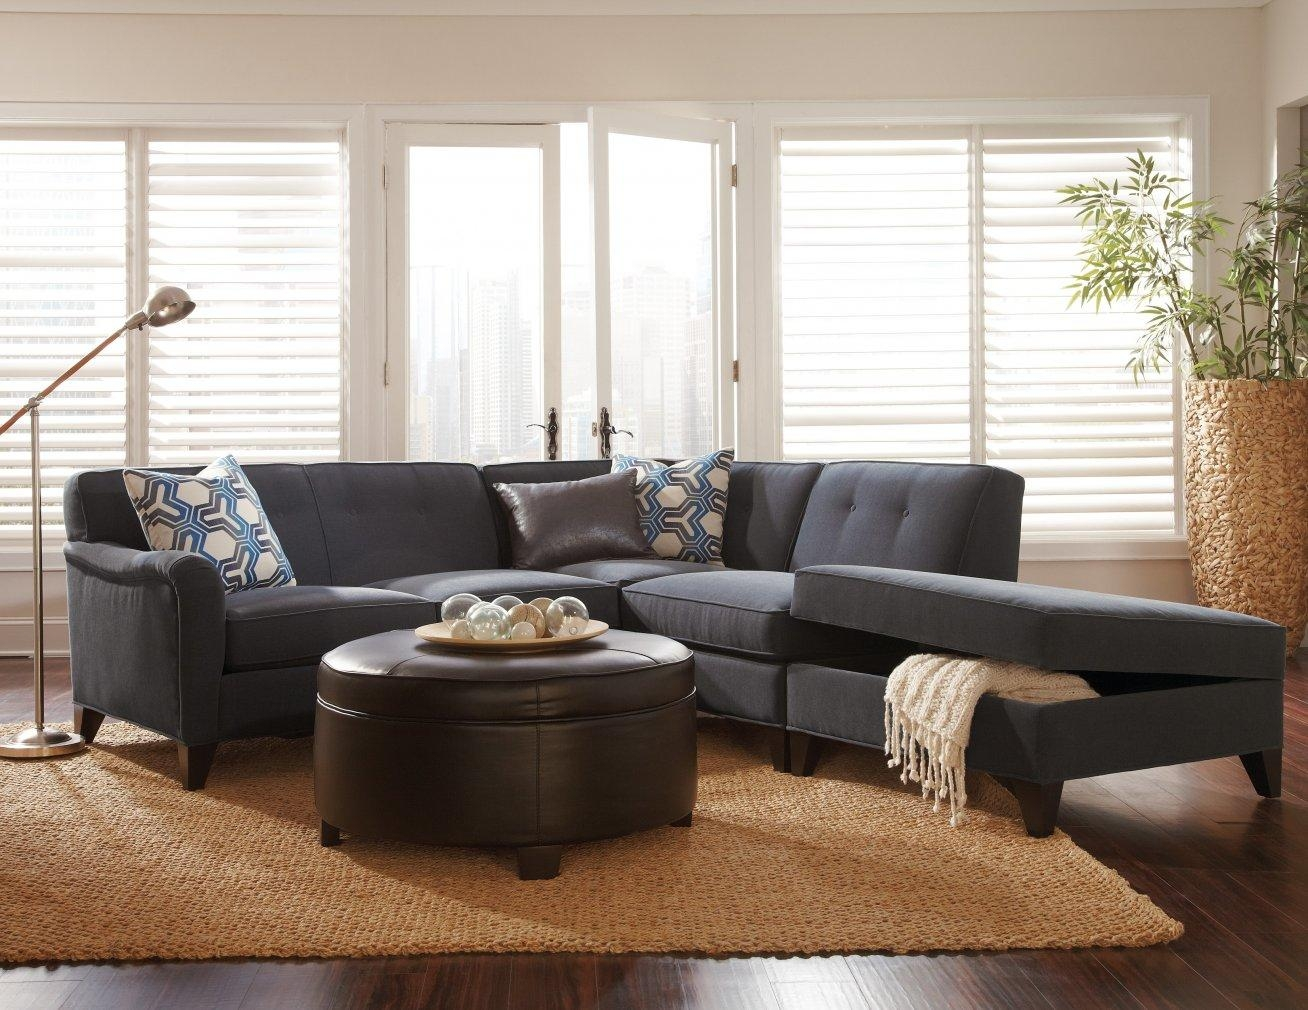 Jonathan Louis Furniture intended for Jonathan Louis Sectional